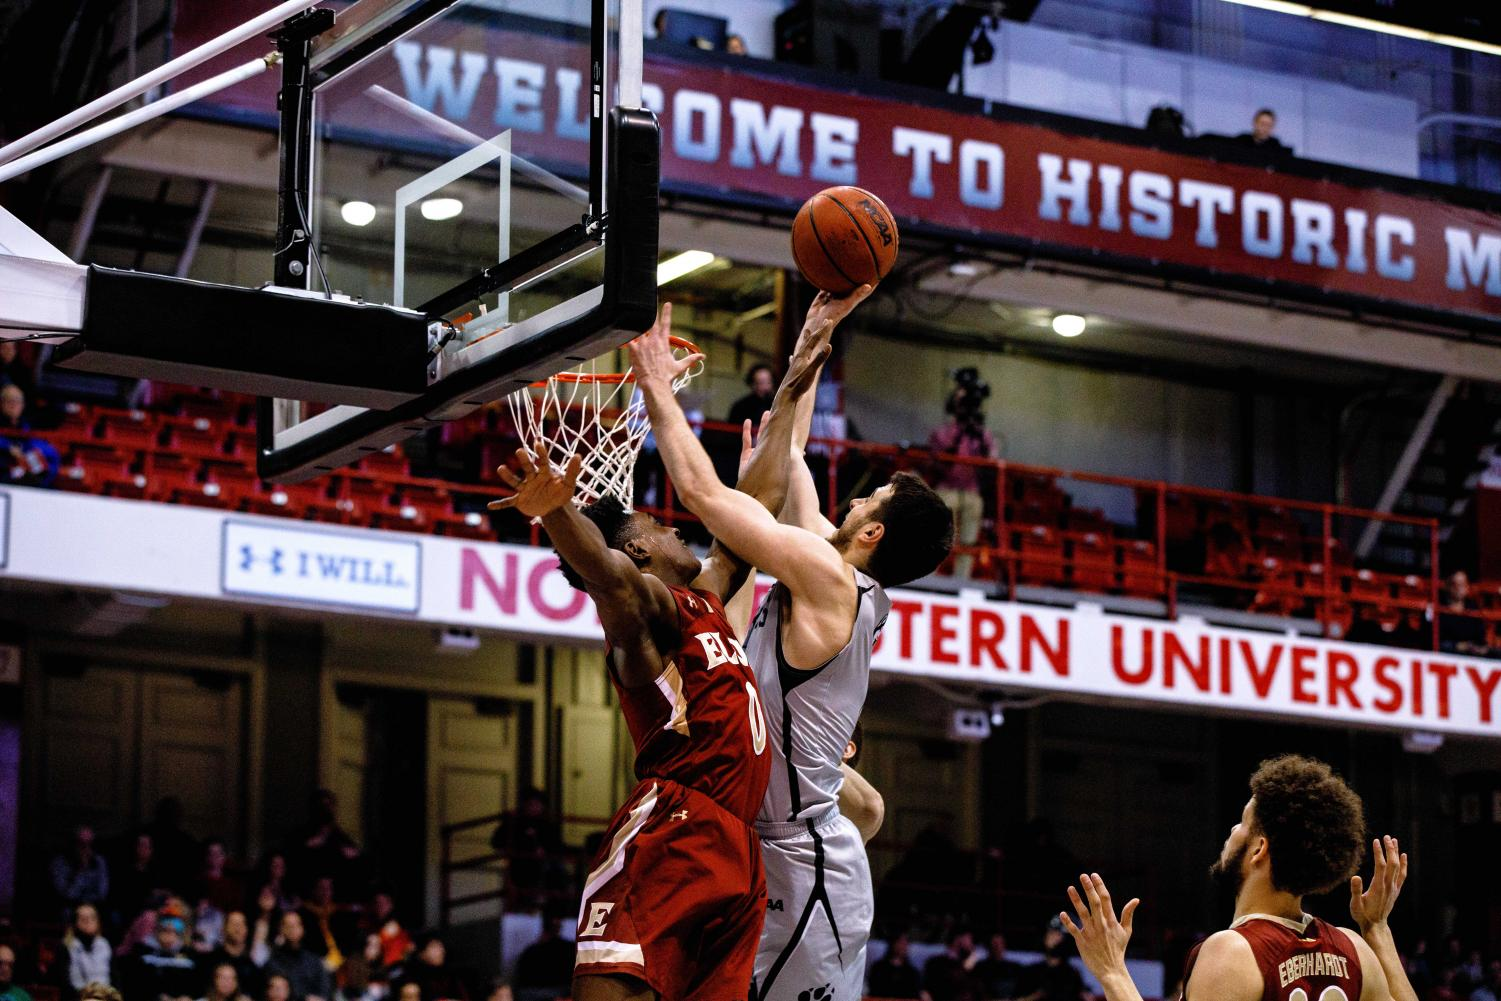 Senior guard Vasa Pusica puts up a shot in traffic in a prior game against Elon. Pusica led the Huskies with 19 points Thursday.